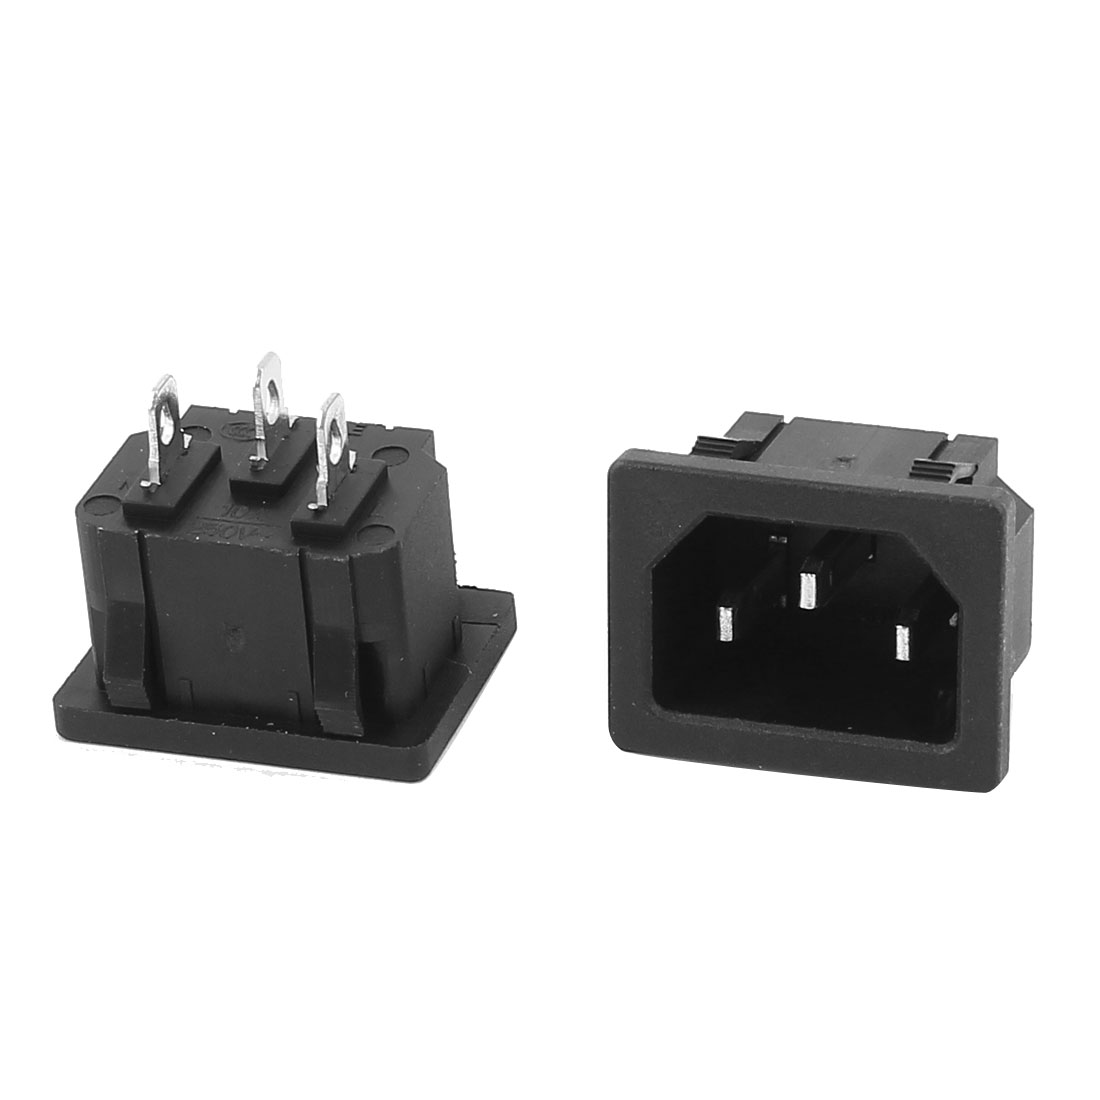 2Pcs Panel Mounted IEC320 C14 Inlet 3-Pin Socket Connector AC 250V 10A